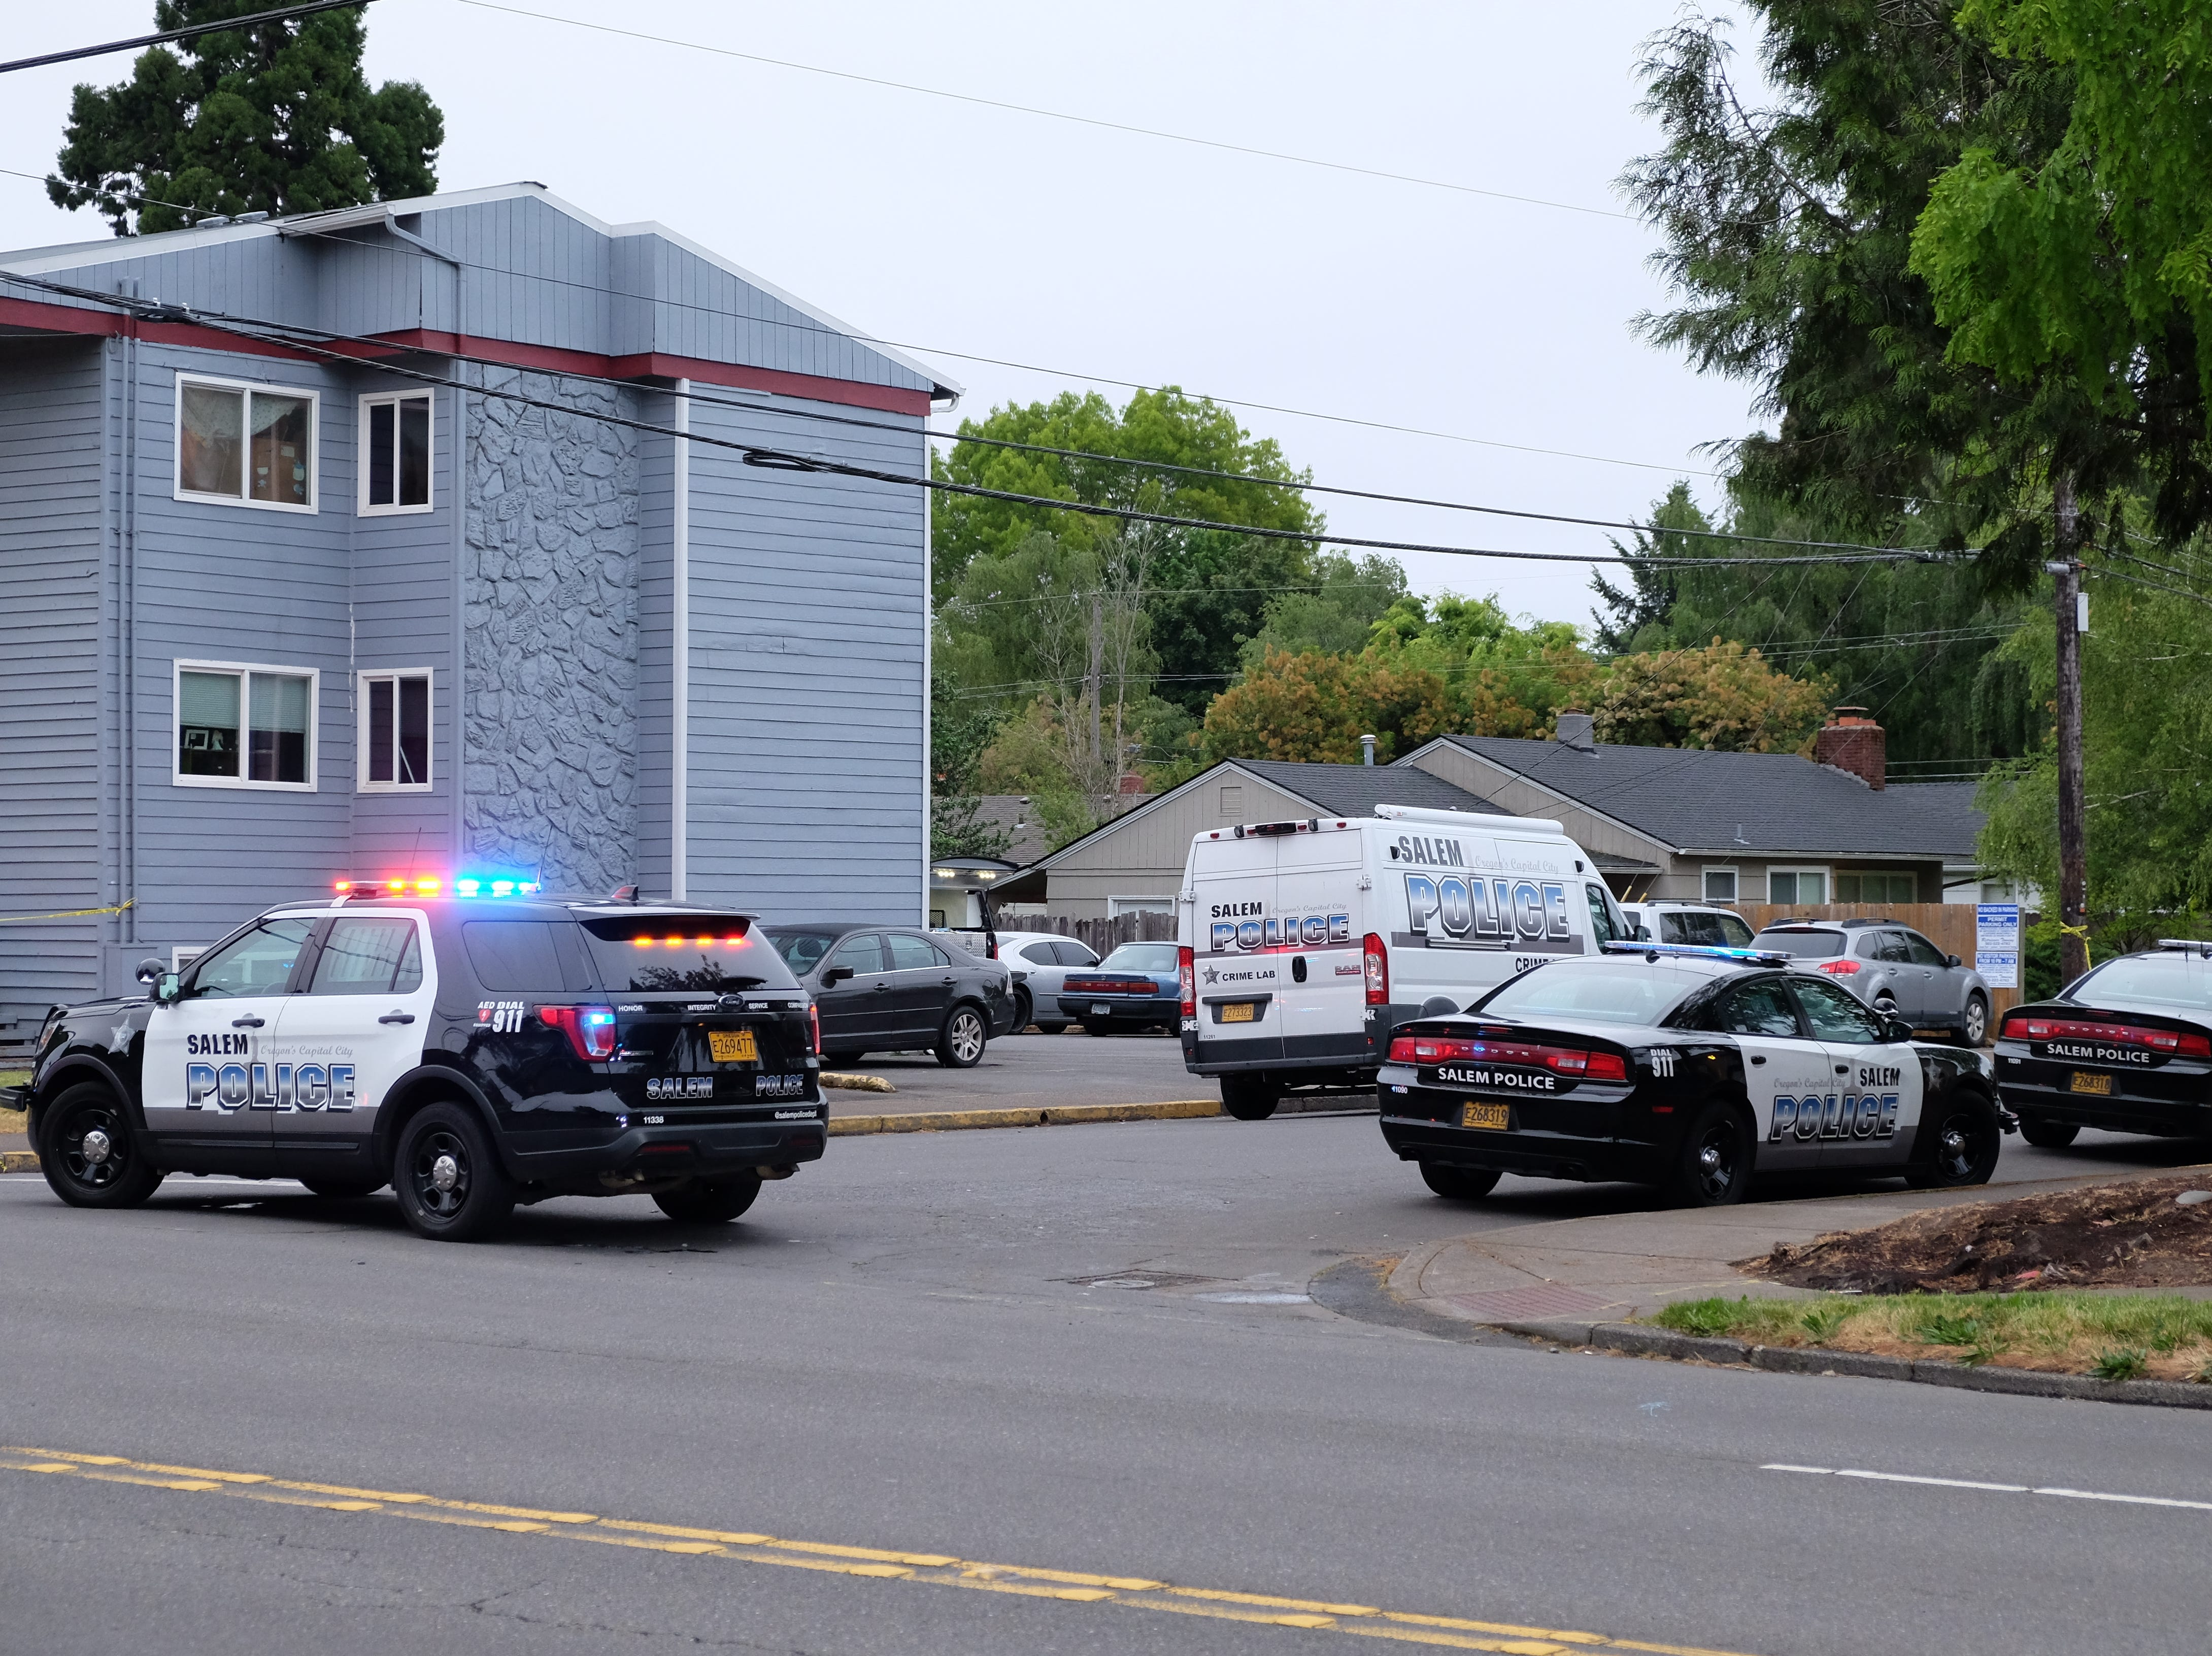 Police vehicles outside of an apartment complex in the 2500 block of Broadway where a suspect was taken into custody Wednesday morning, May 15, 2019.